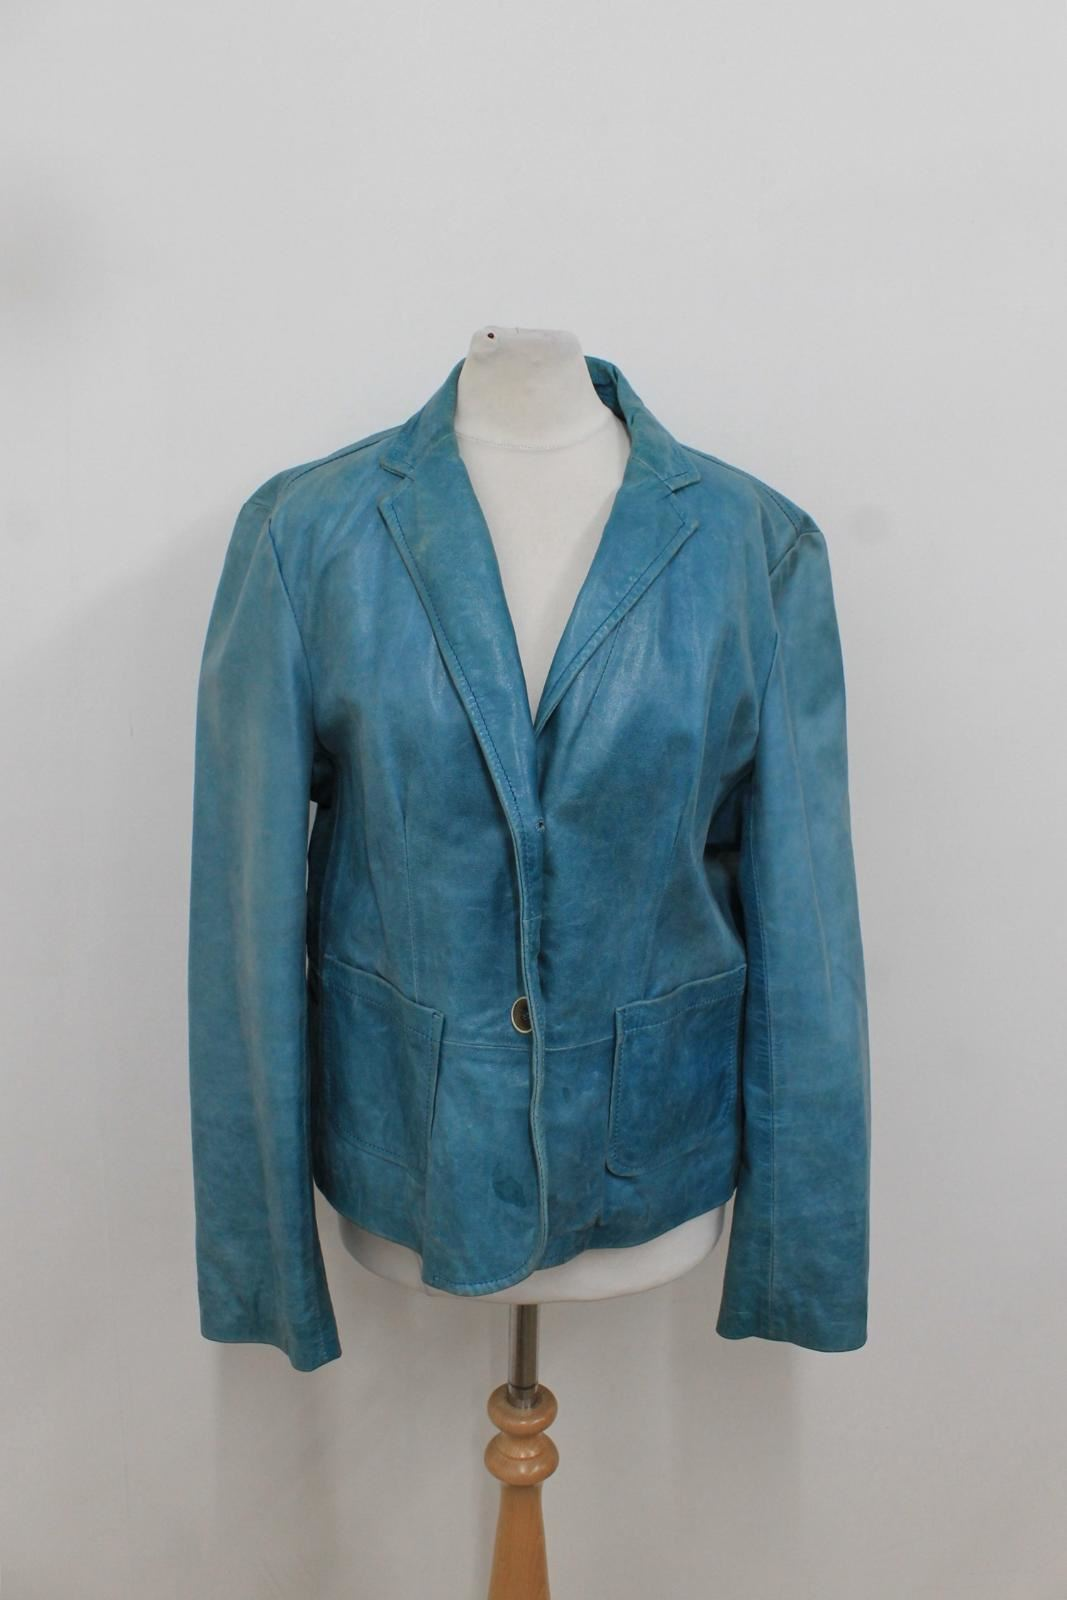 Light Distressed Blue Læder Jacket Dkny Collared Knap Ladies Uk14 Close wE5qBOg